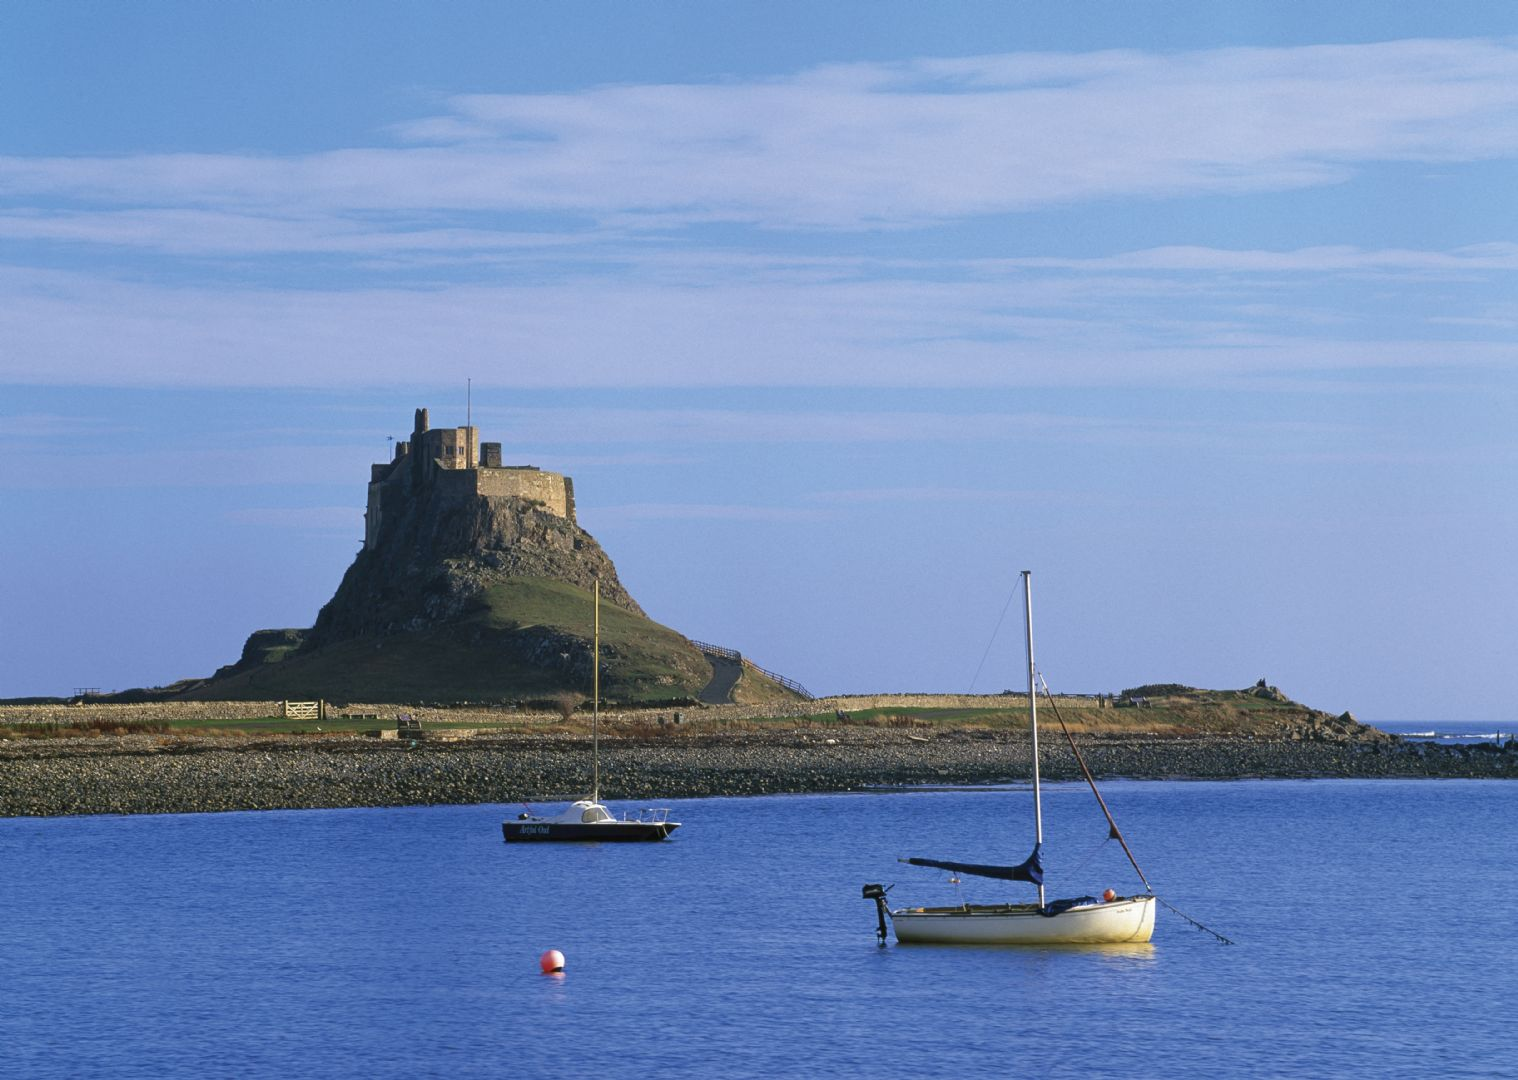 leisure-cycling-holiday-northumberland-lindisfarne-castle.jpg - UK - Romans, Reivers and Ancient Castles - Self-Guided Leisure Cycling Holiday - Leisure Cycling